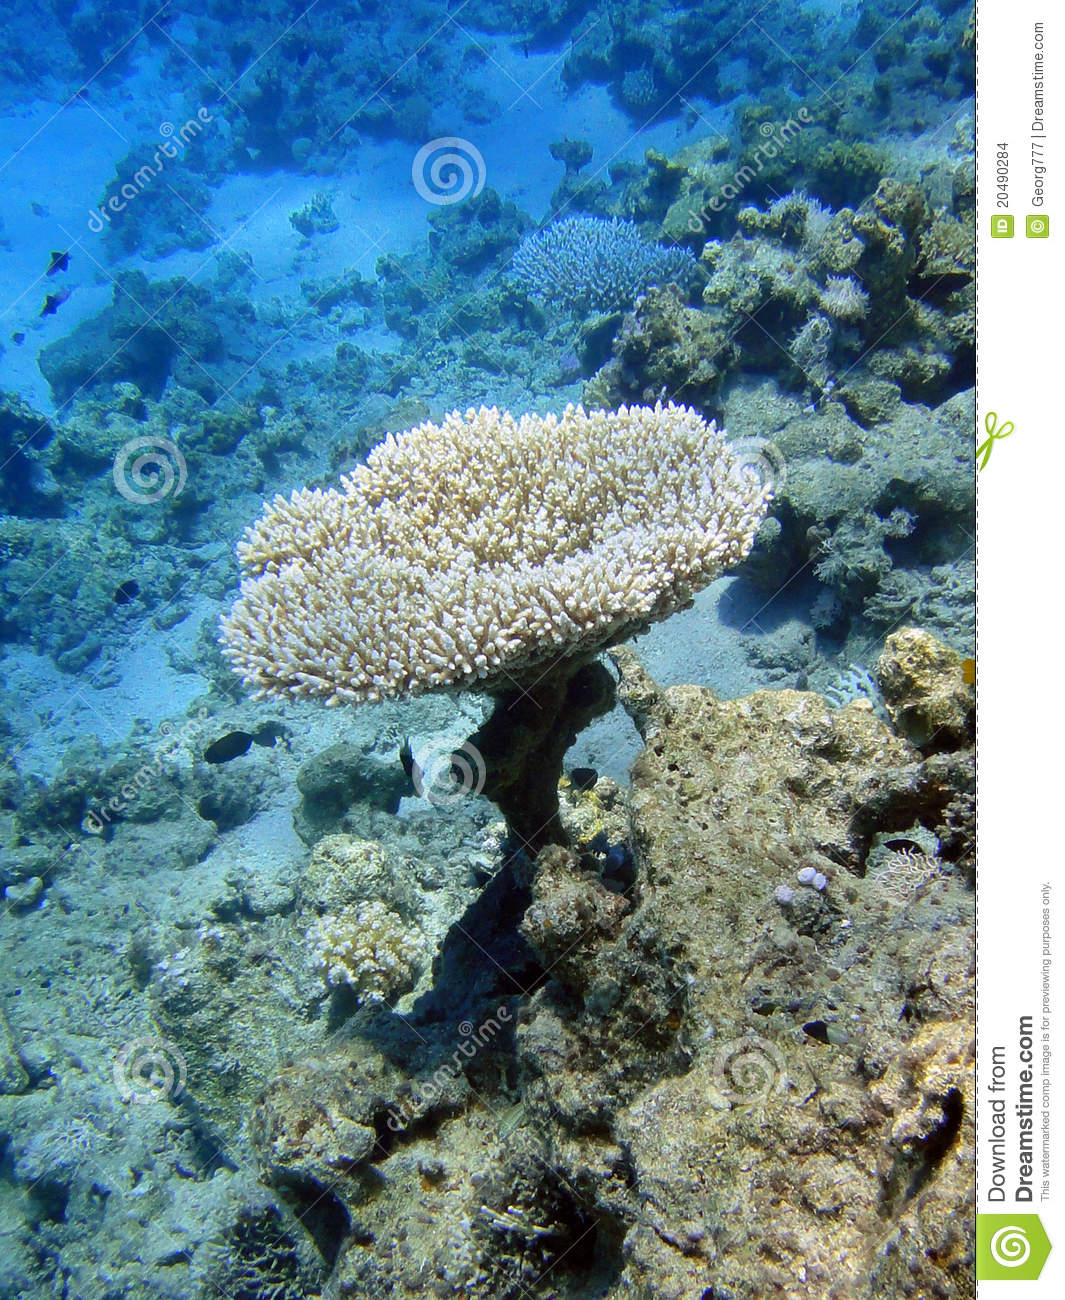 Table Coral Stock Images - Image: 20490284